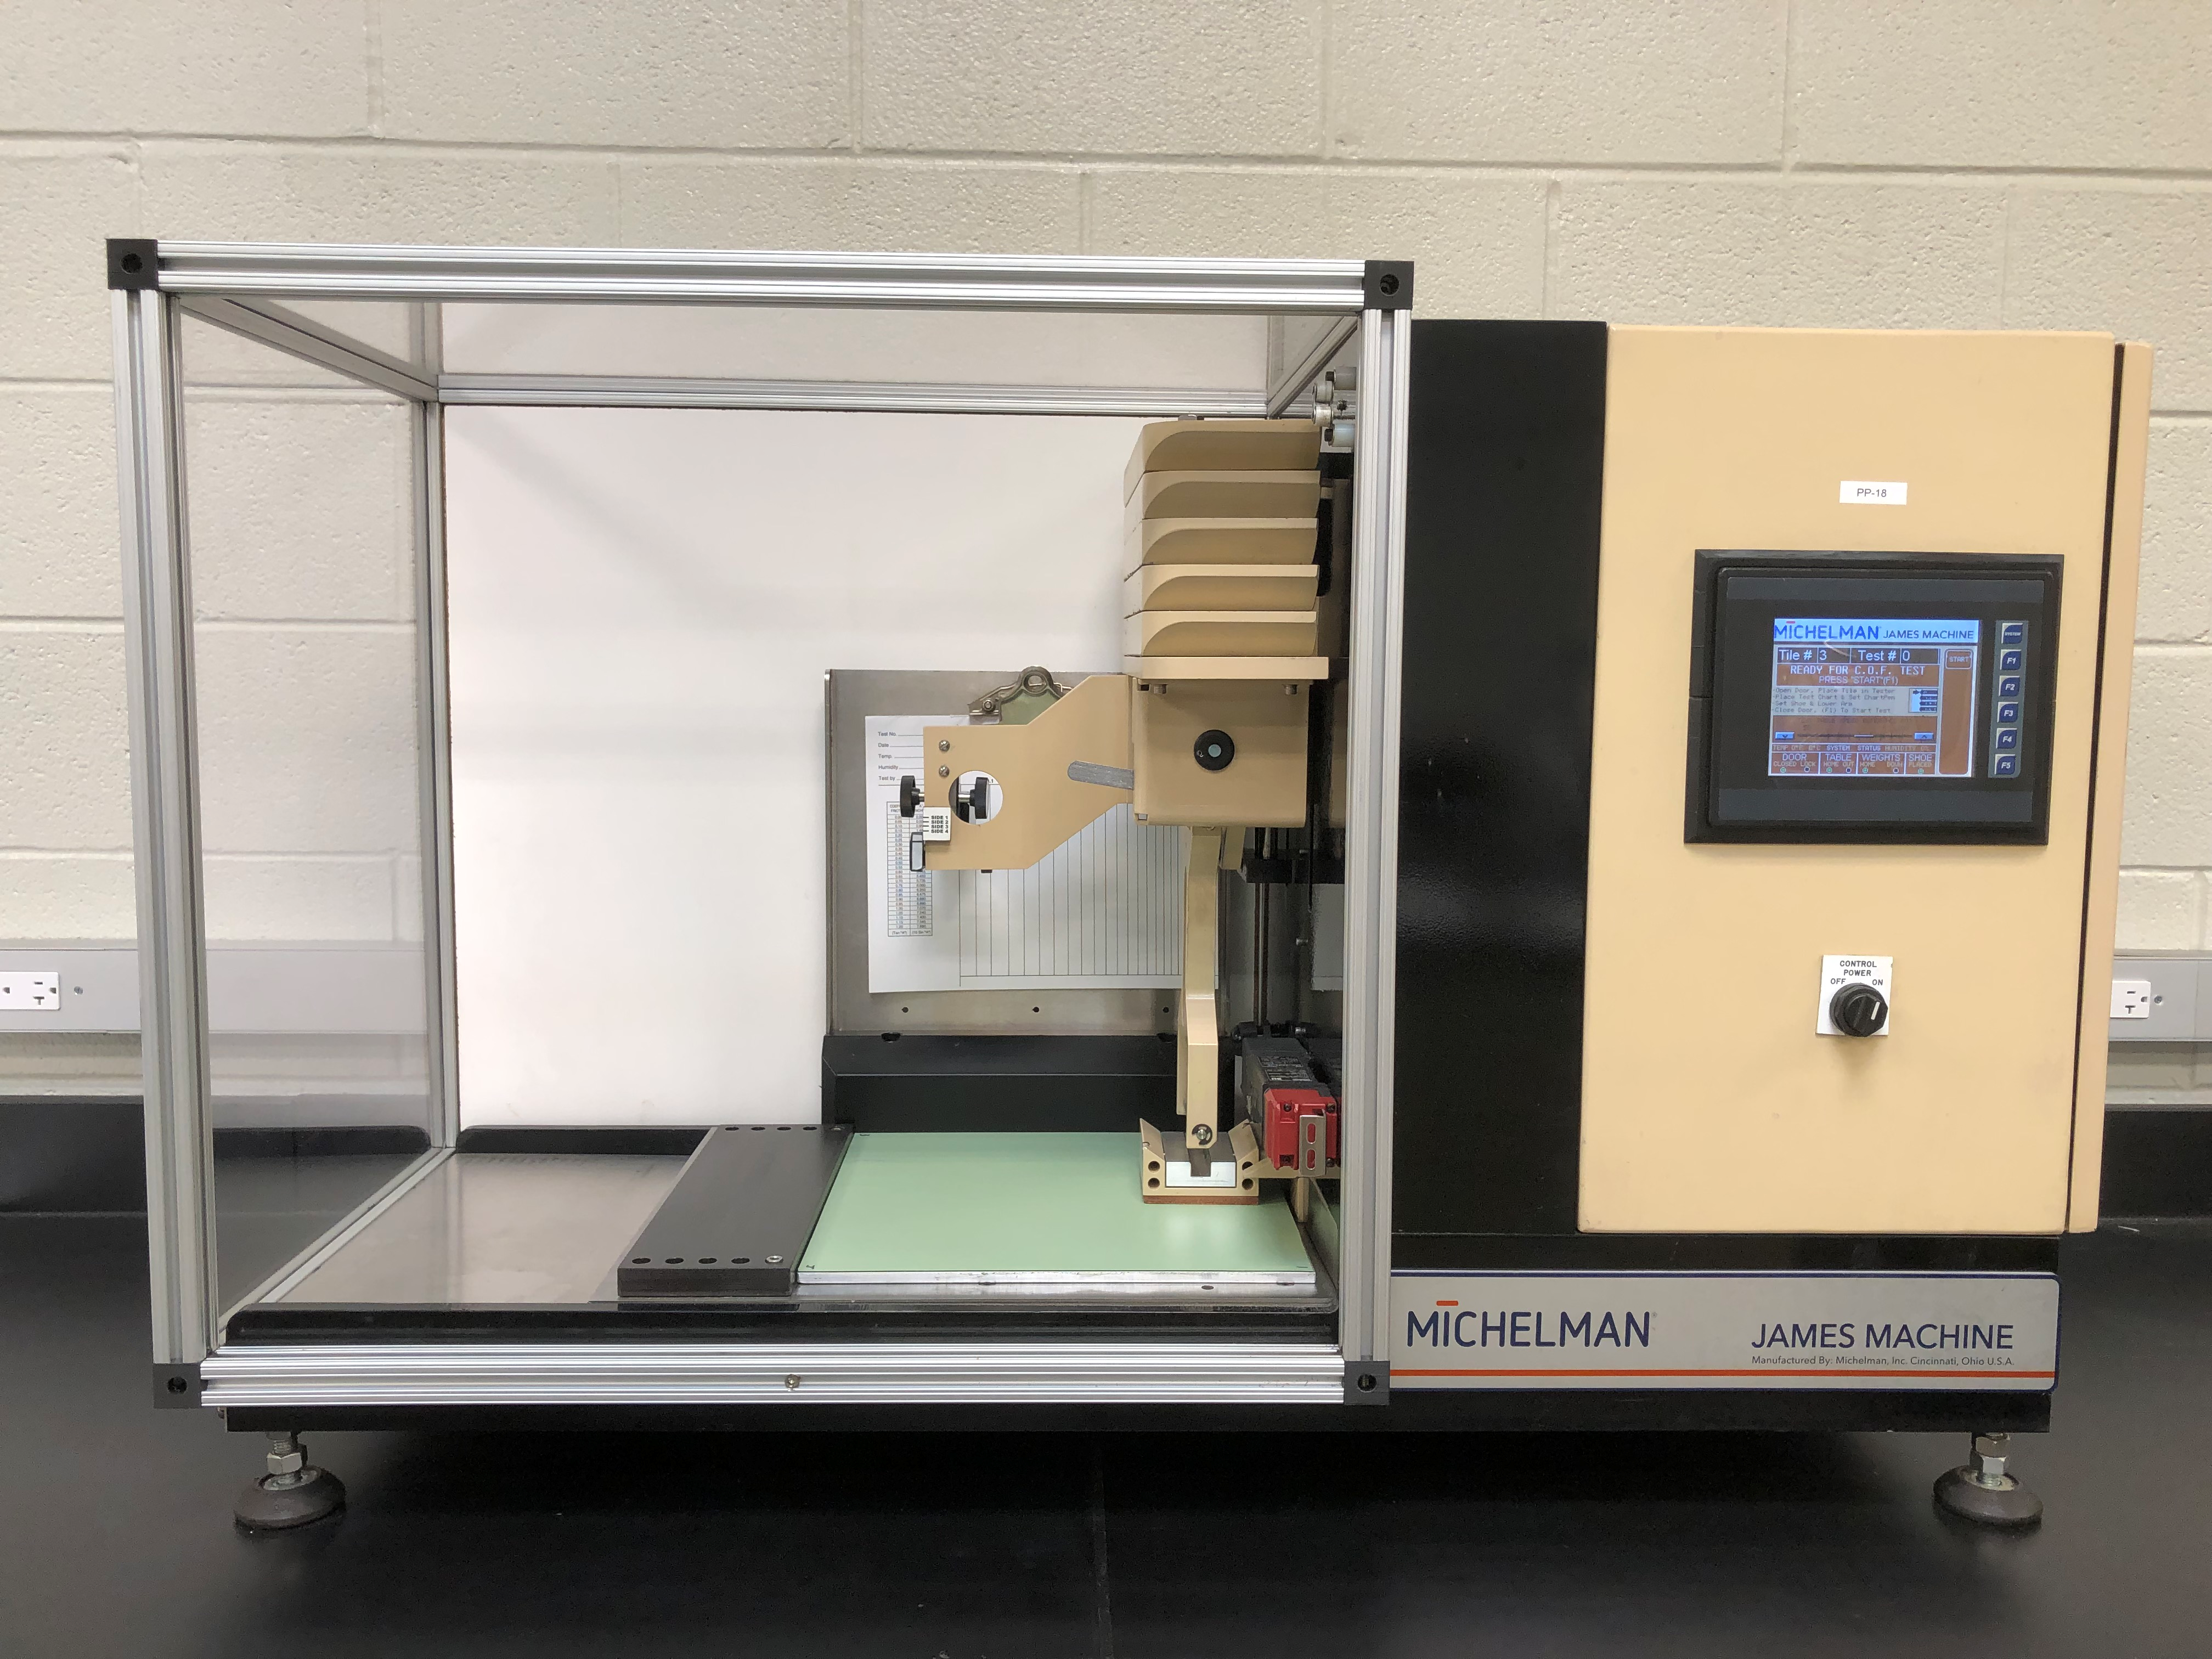 ASTM D2047 Static Coefficient of Friction Test